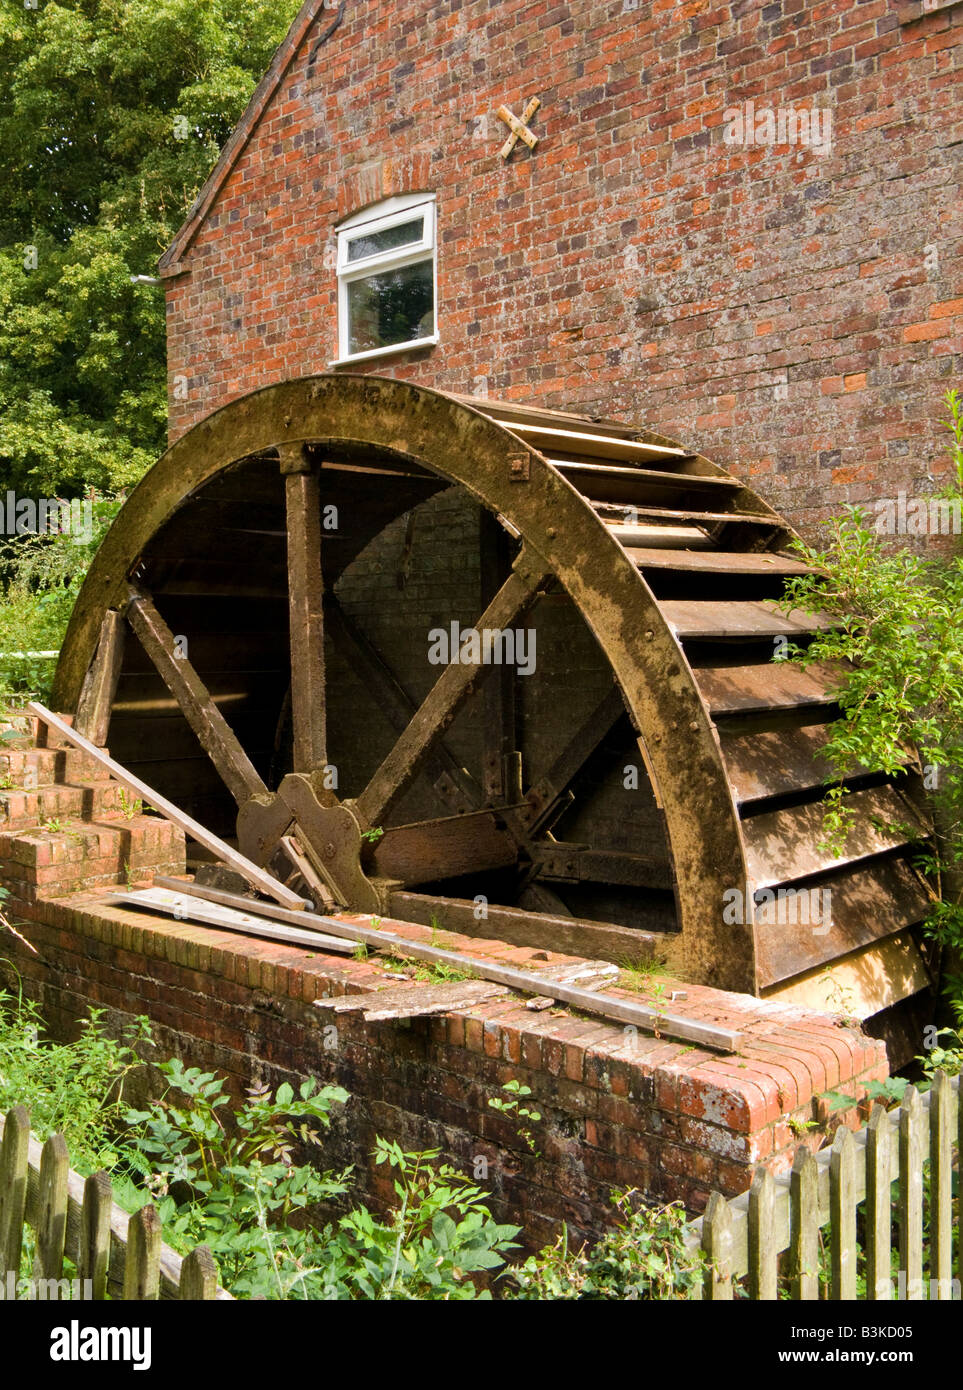 Disused Stockwith Water Mill wheel, Lincolnshire, England, UK - Stock Image